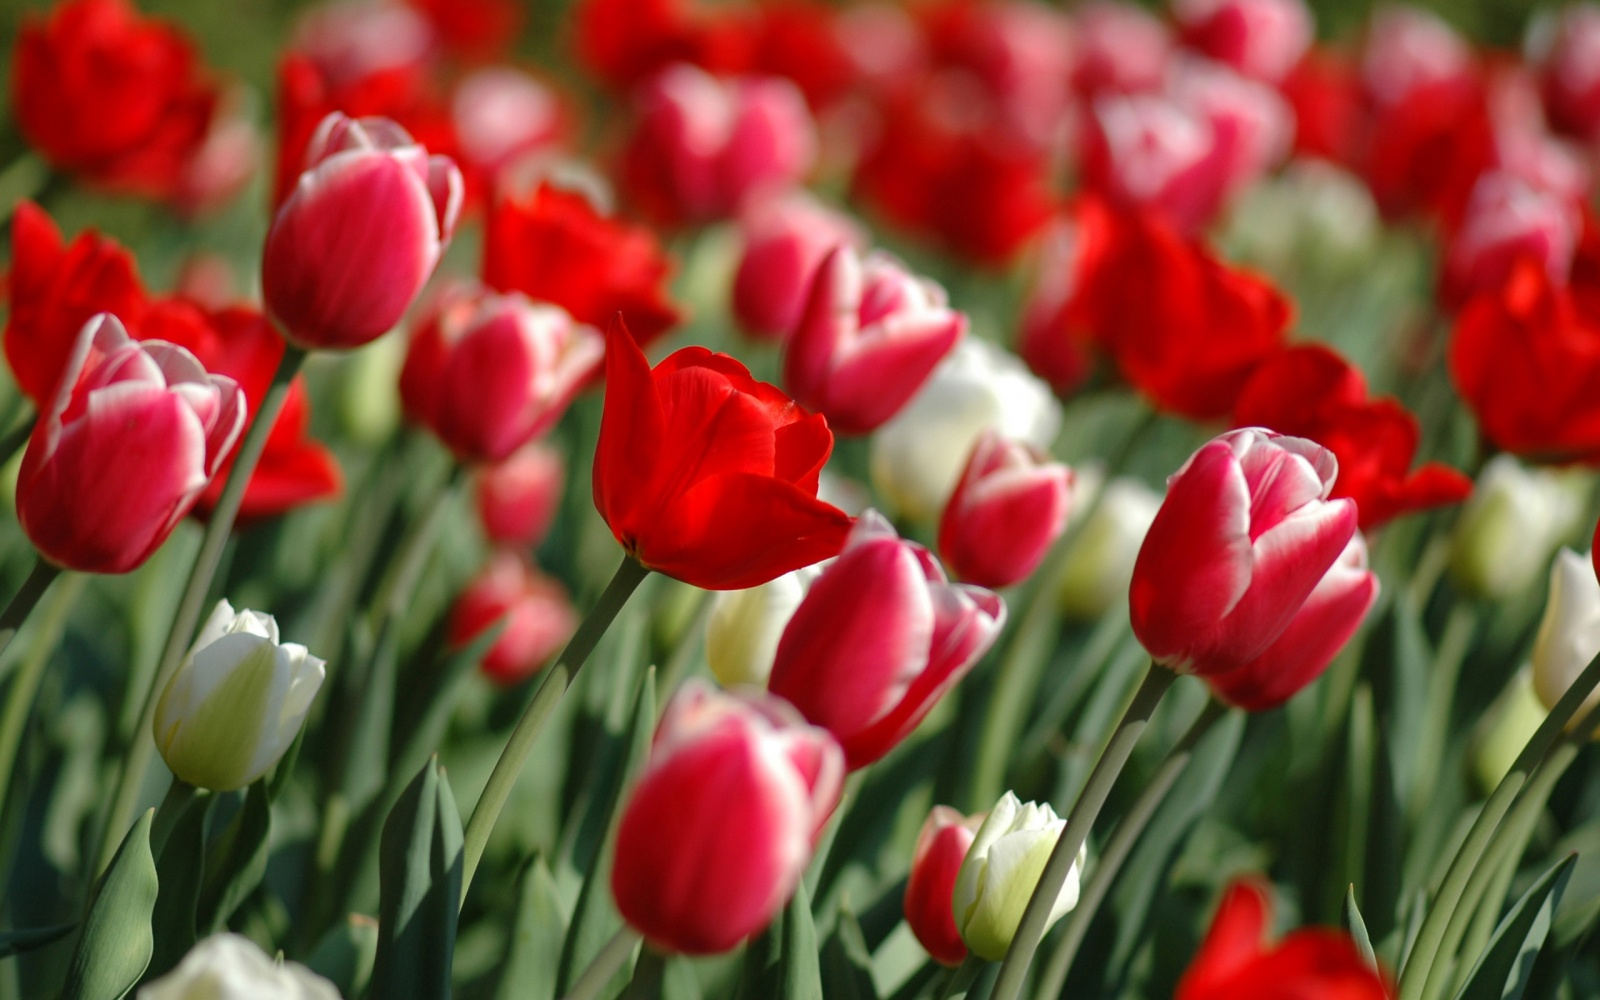 Flowers Wallpapers: Red Tulips Flowers Wallpapers